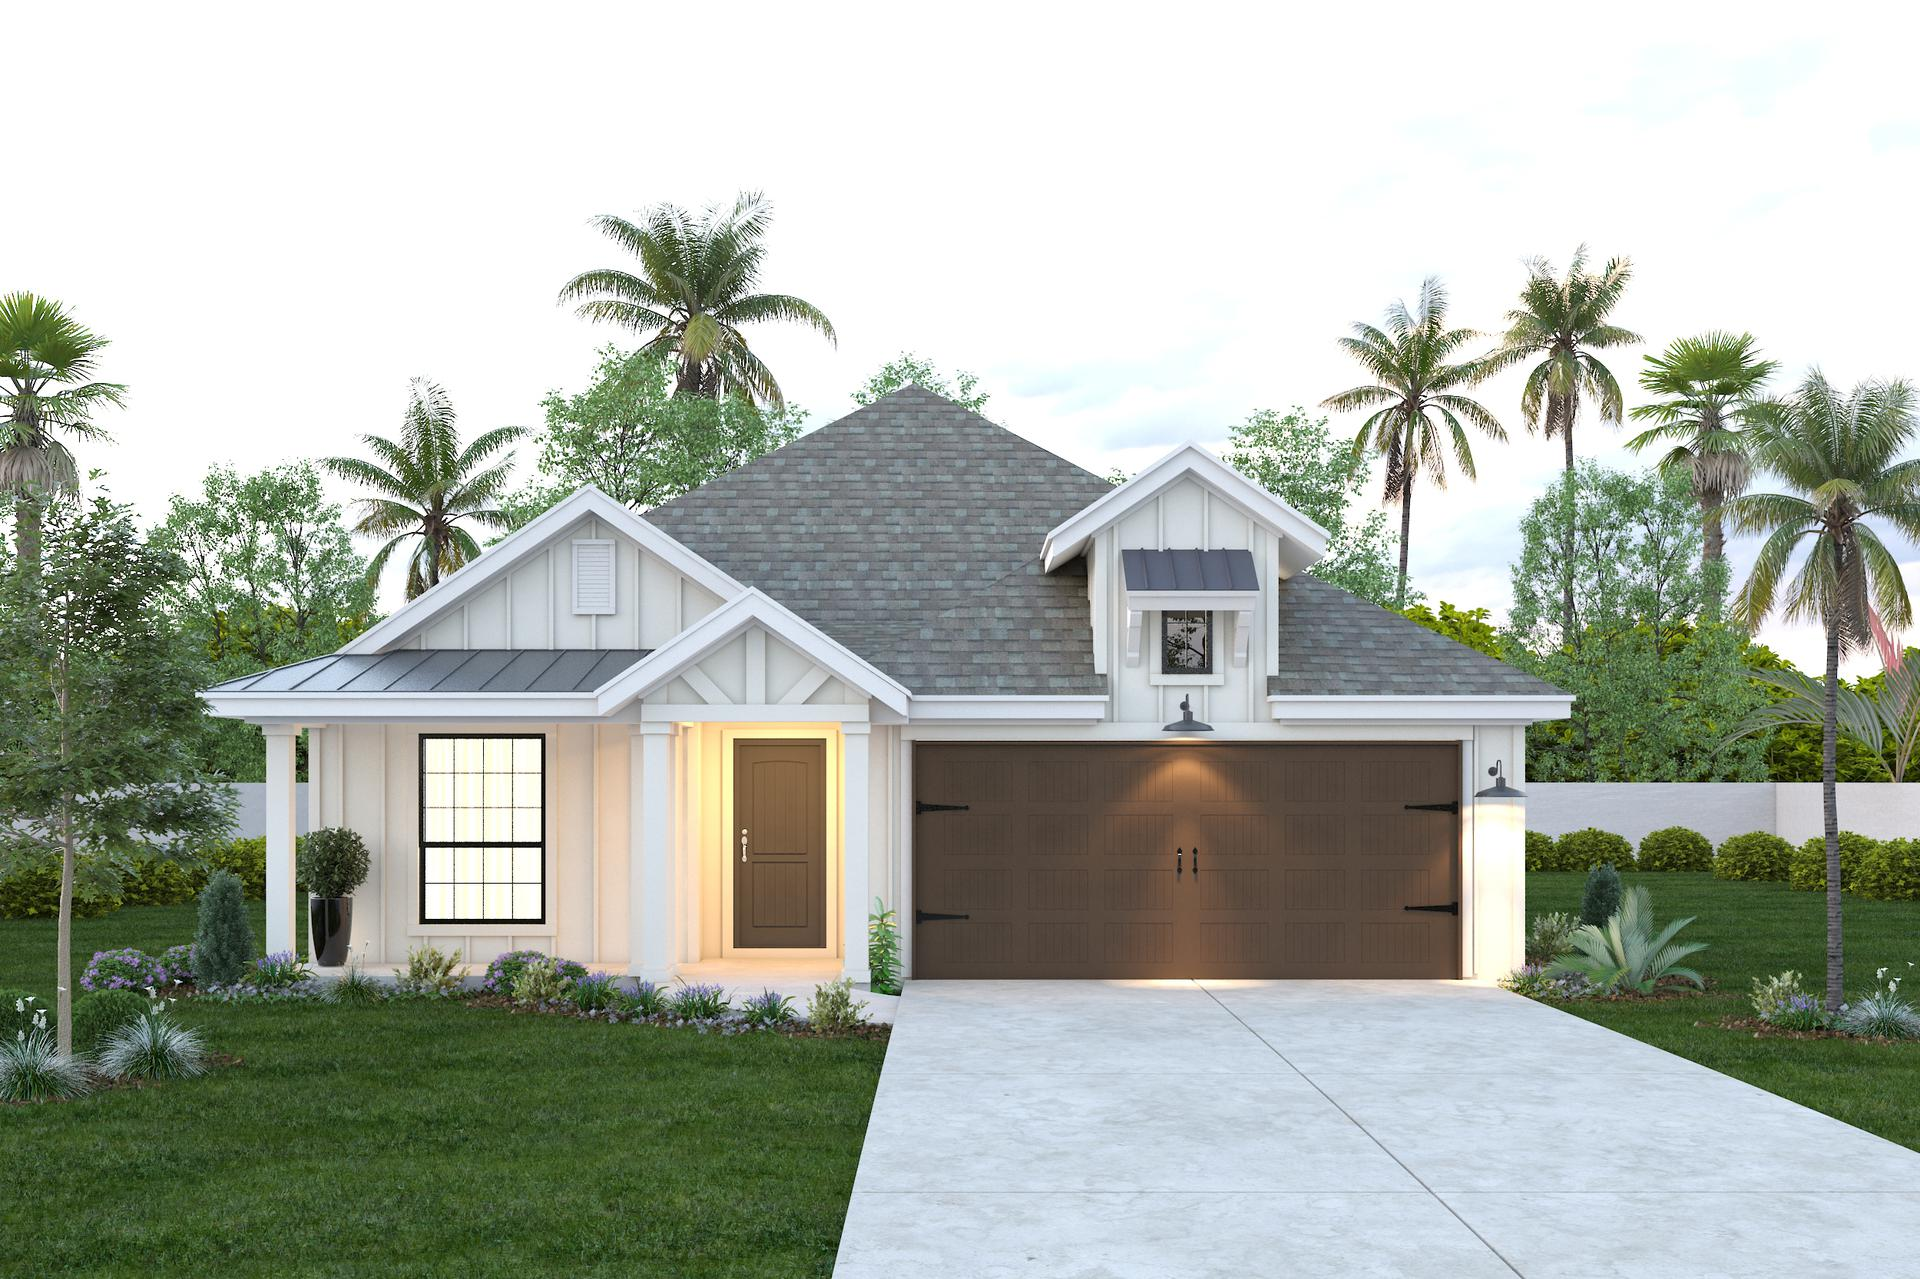 The Santiago new home in Mission , TX